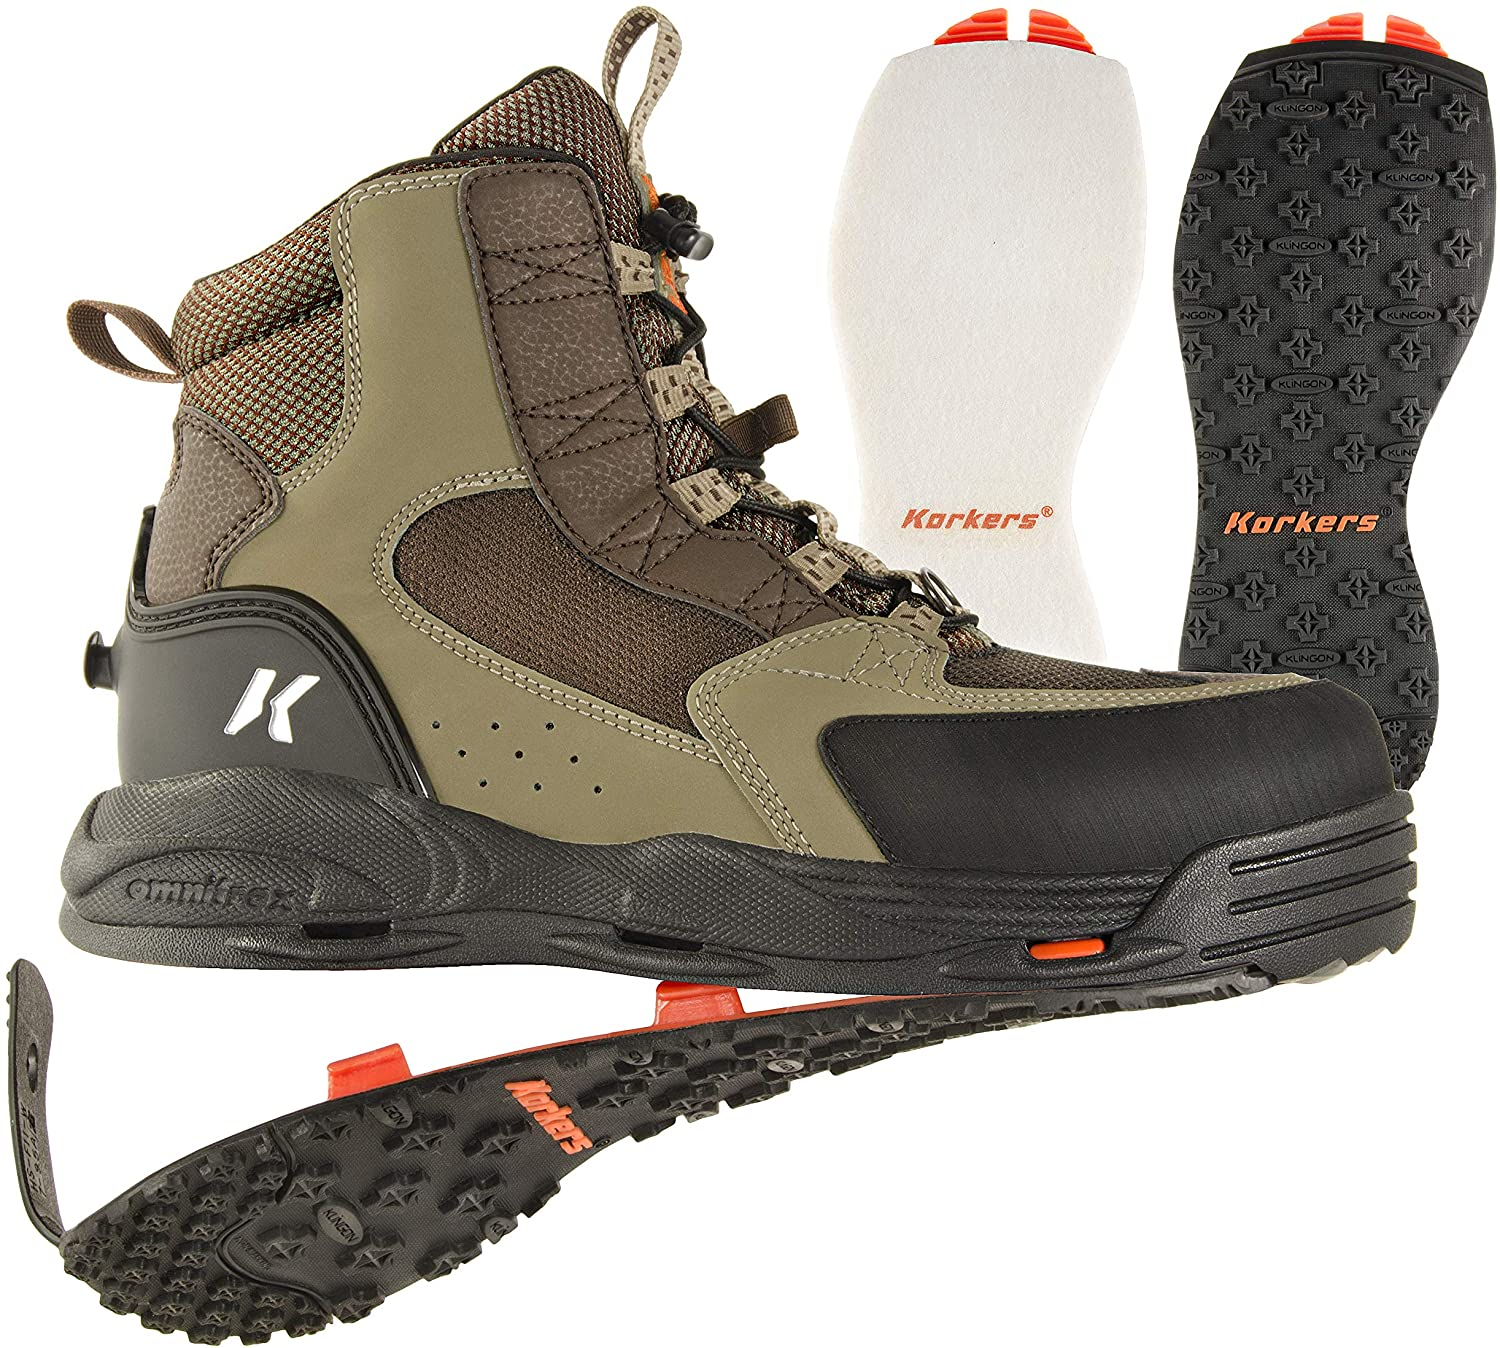 Korkers Redside Wading Boots review